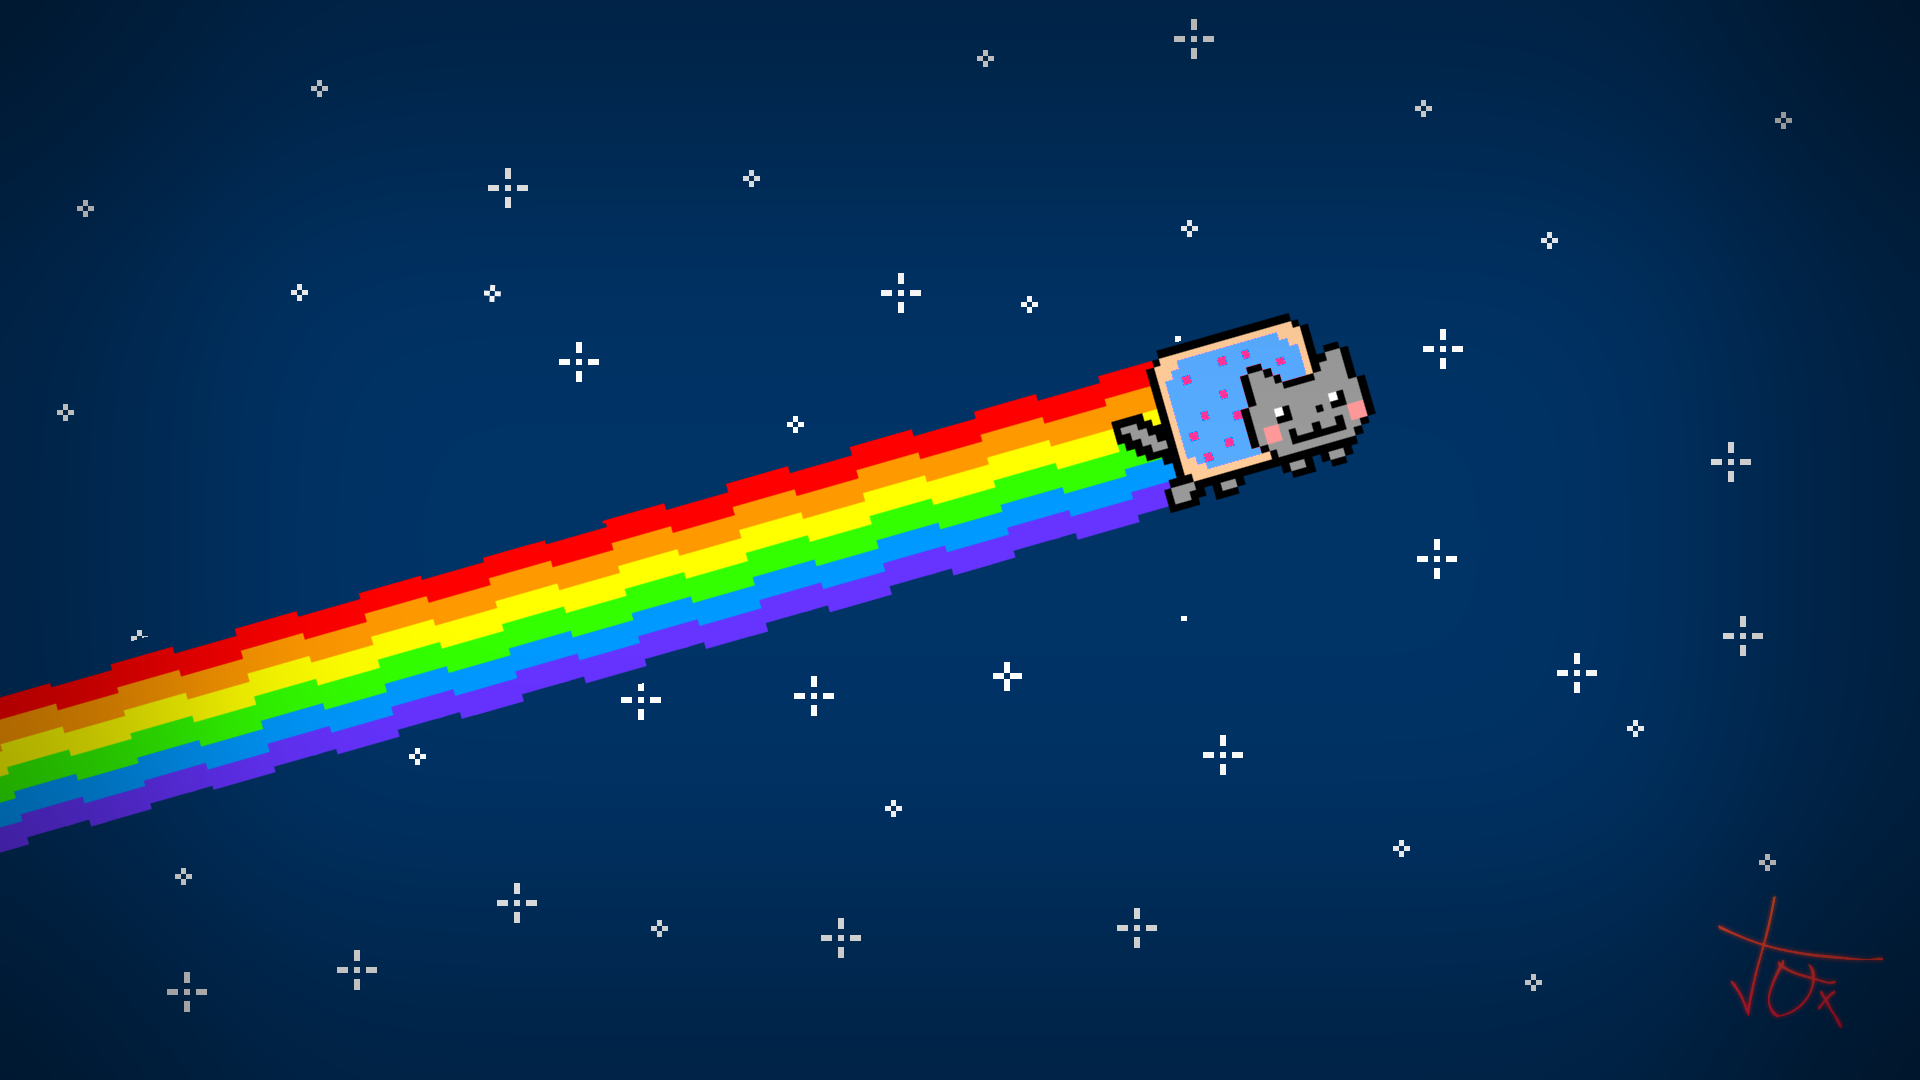 Nyan Cat Wallpaper X